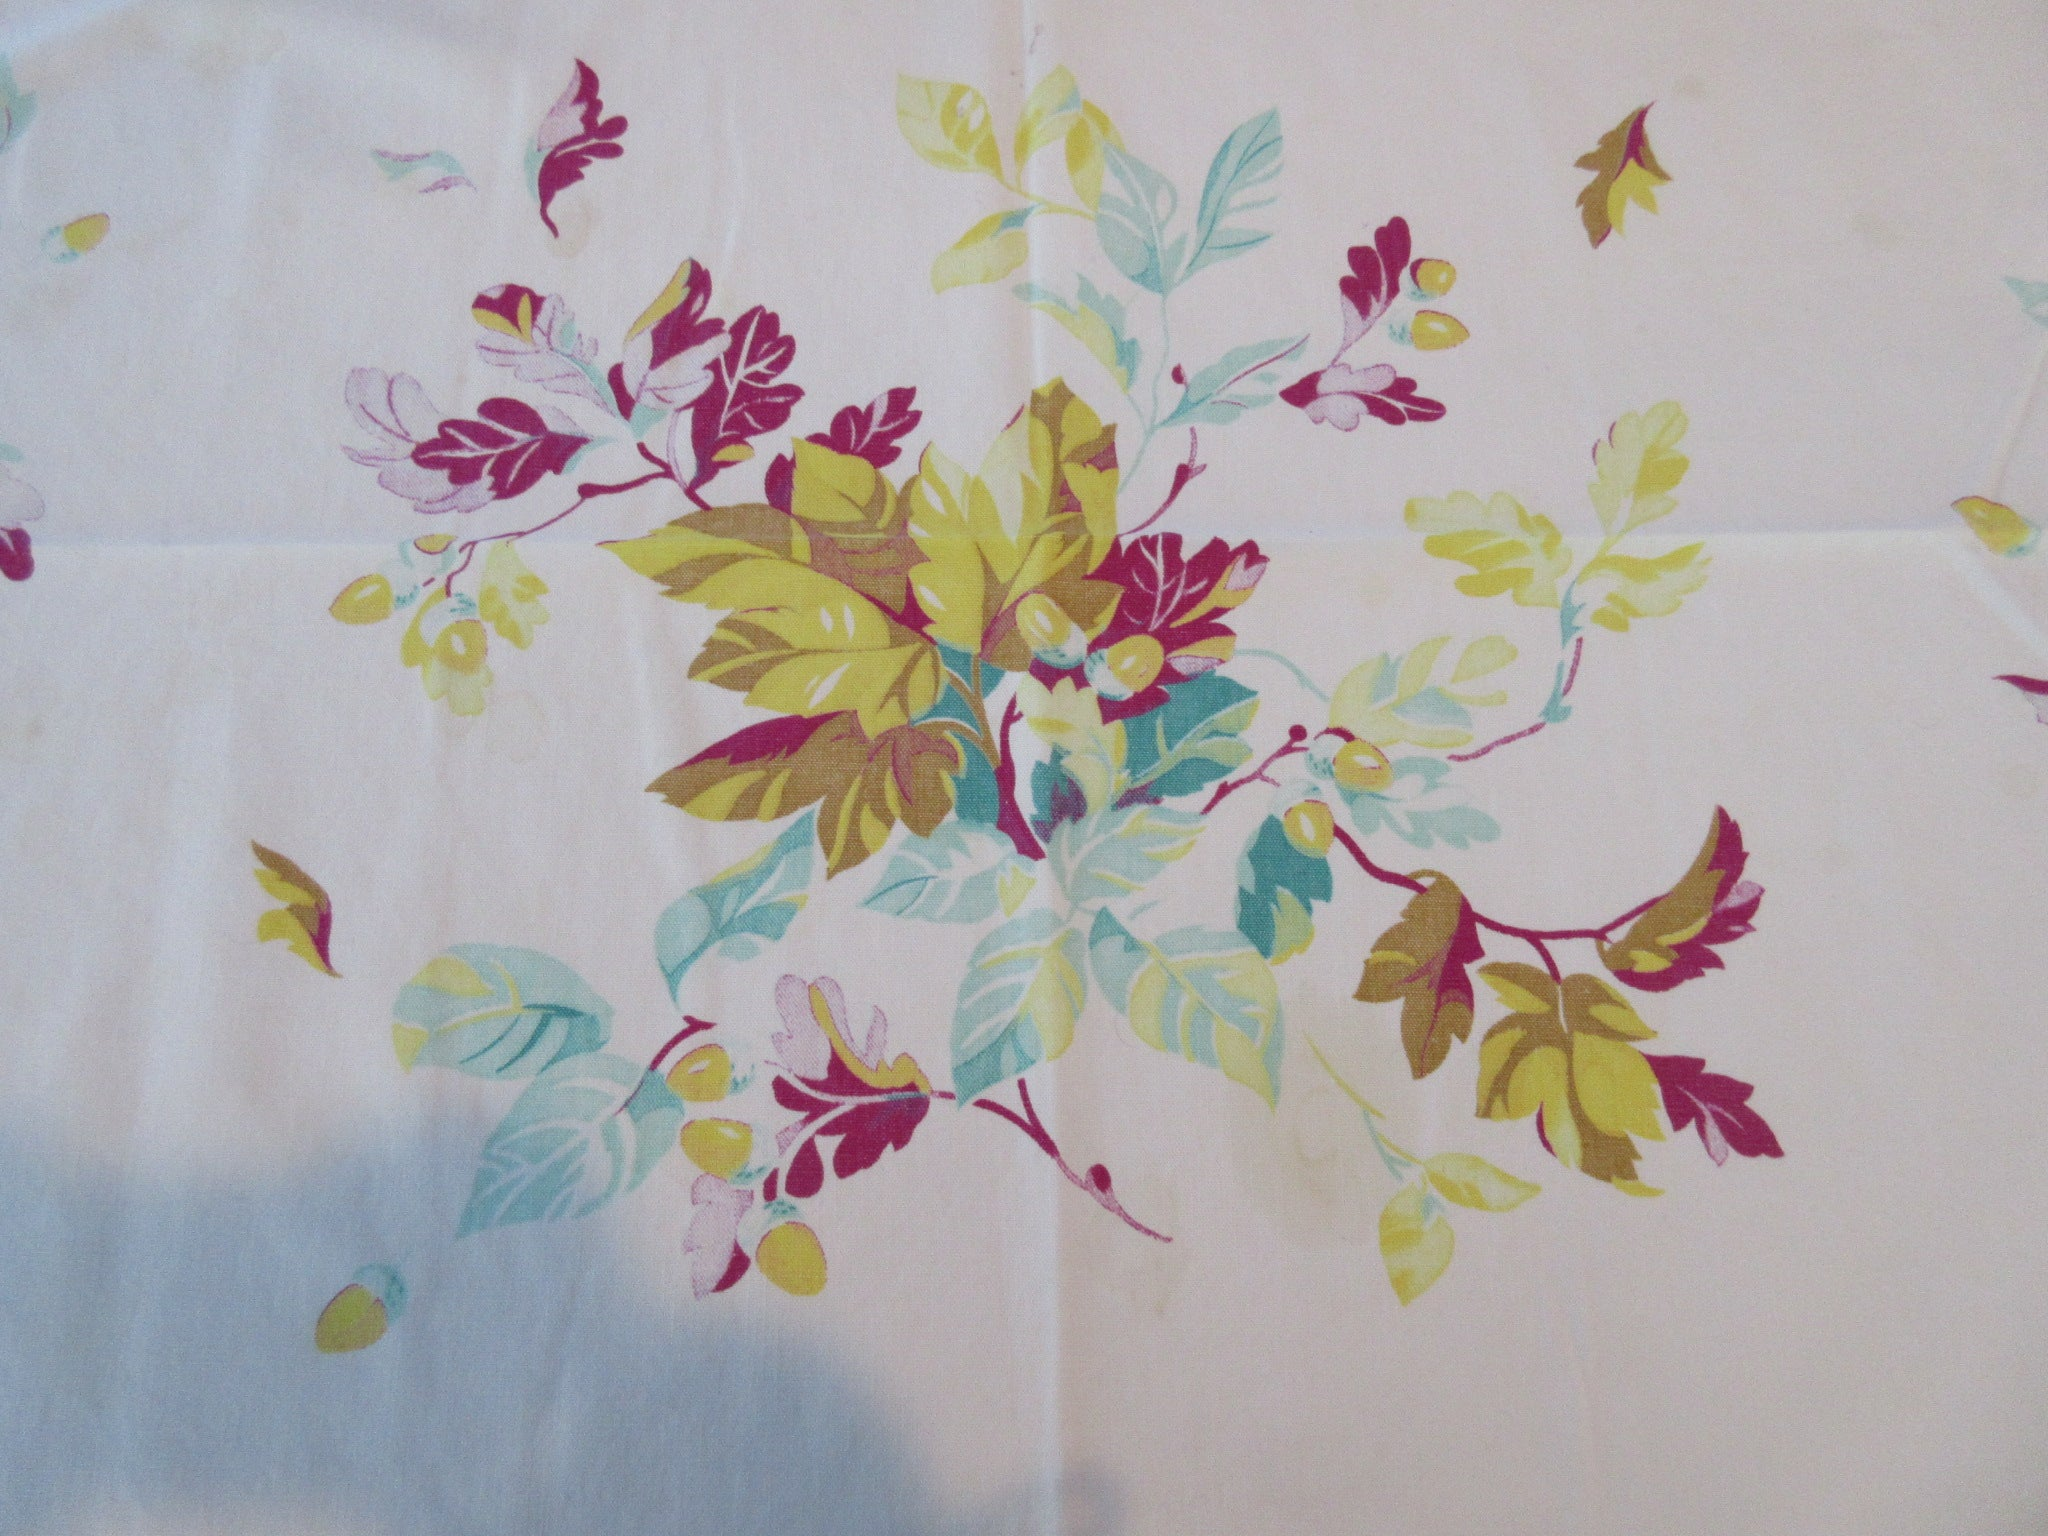 Wilendur Fall Oak Leaves Cutter Floral Vintage Printed Tablecloth